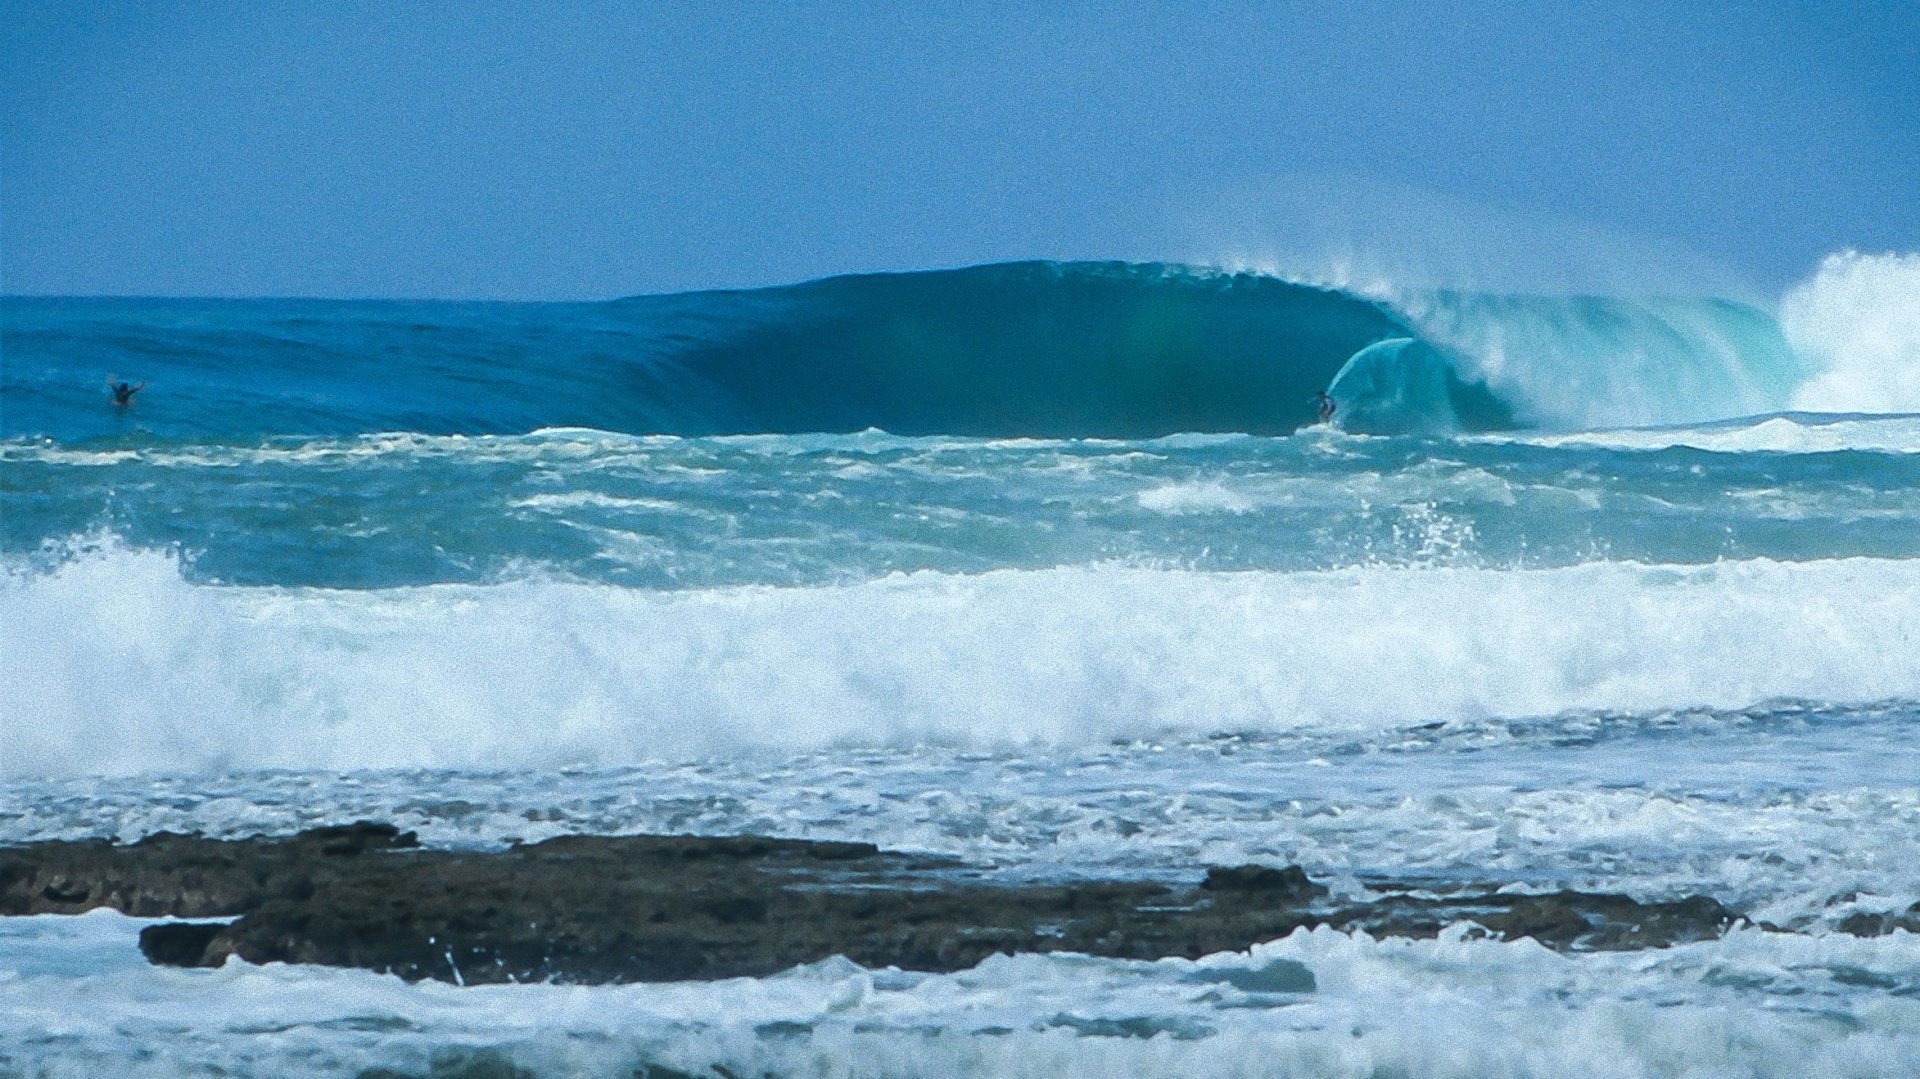 xabi eyheramendy's photo of Secret (Nias)